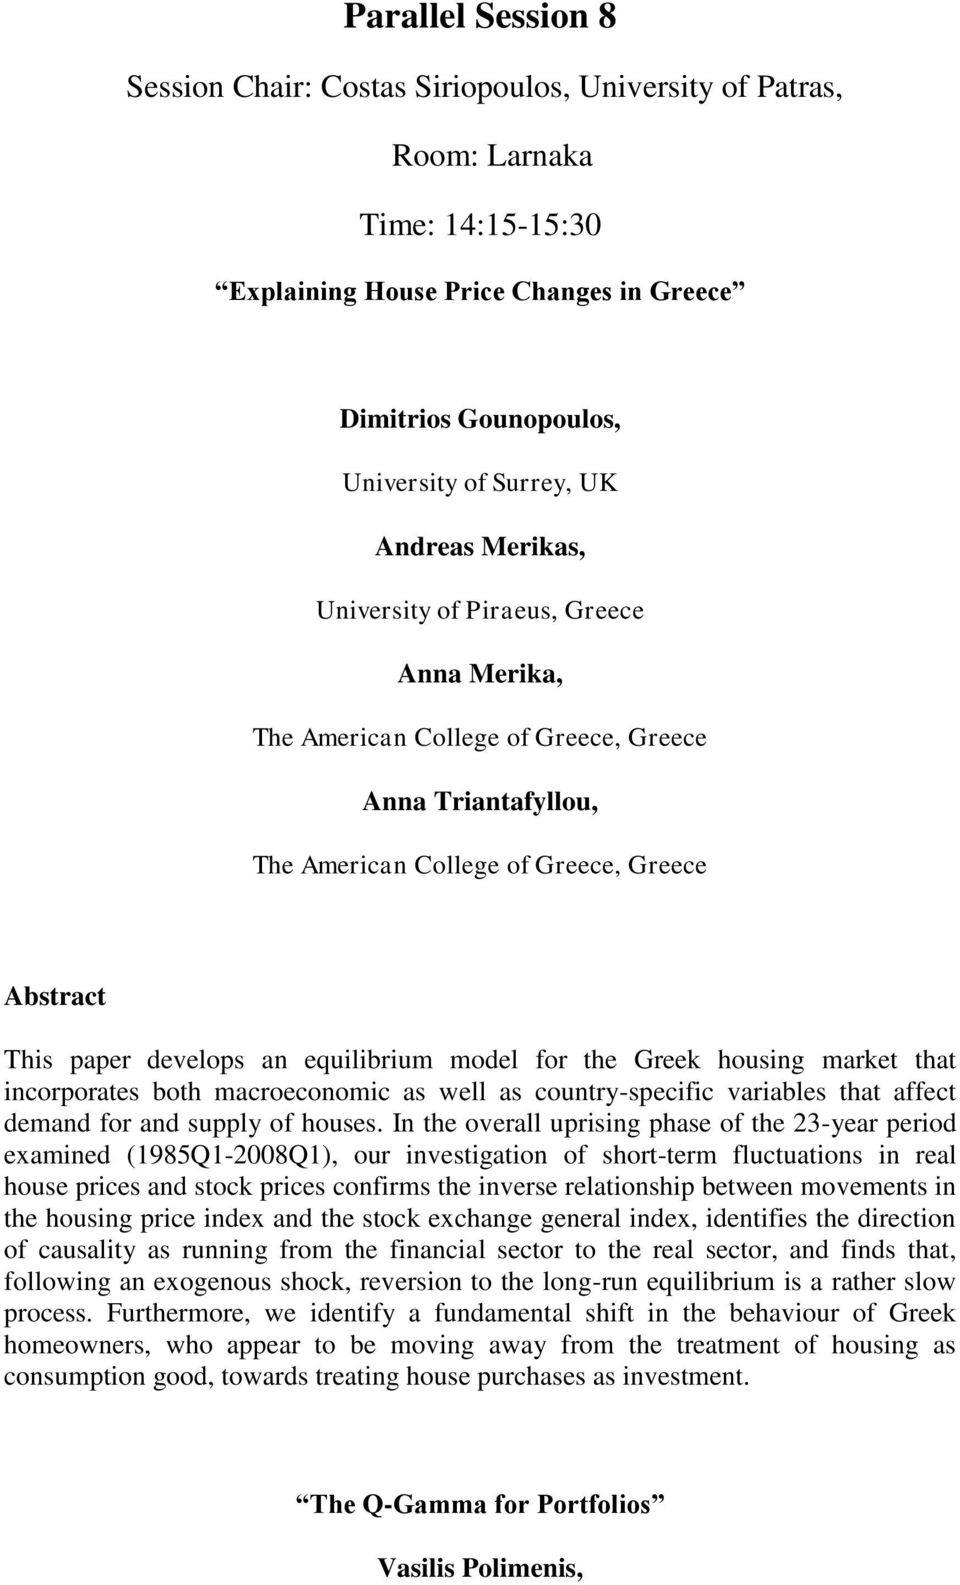 for the Greek housing market that incorporates both macroeconomic as well as country-specific variables that affect demand for and supply of houses.